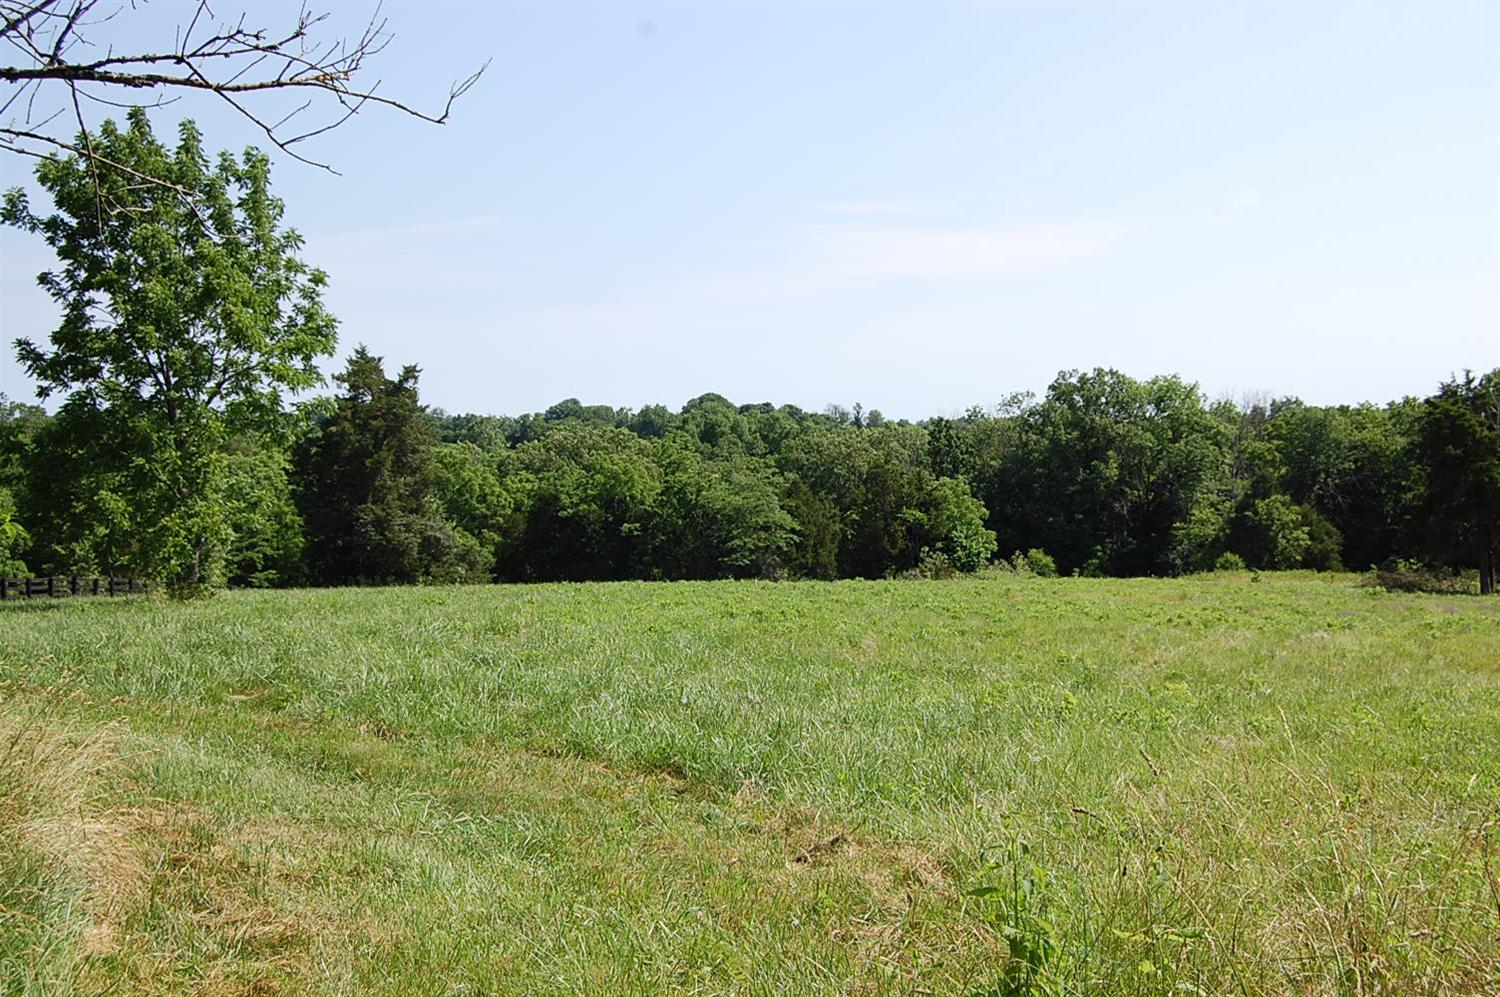 A%20rare%20find%20in%20Woodford%20County!!%20%205+%20acre%20tract%20with%20Clear%20Creek%20frontage,%20woods,%20and%20cleared%20land%20in%20Elm%20Corner%20Estates%20subdivision%20-%20a%206-parcel%20gated%20community.%20%20Covenants%20and%20restrictions%20and%20road%20maintenance%20agreement%20apply.%20%20Conduit%20for%20electric,%20phone,%20and%20waterline%20for%20water%20are%20run%20to%20the%20property.%20%20Will%20need%20to%20make%20an%20apopintment%20to%20see.%20%20Adjoining%205.5%20acres%20is%20also%20available.